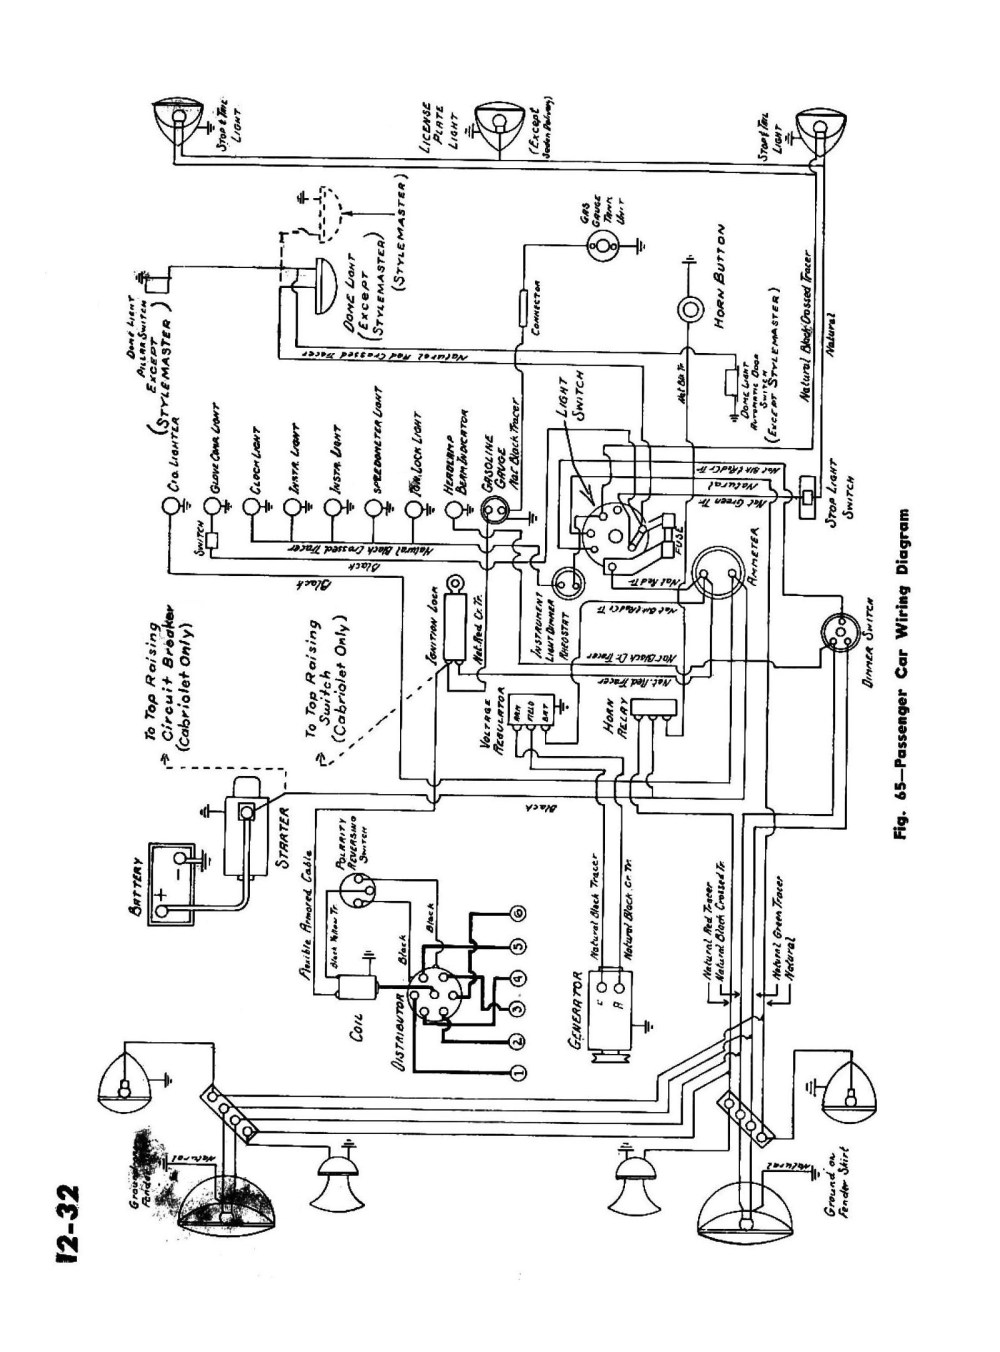 medium resolution of chevy wiring diagrams harley wire diagram 1947 chevy wire diagram